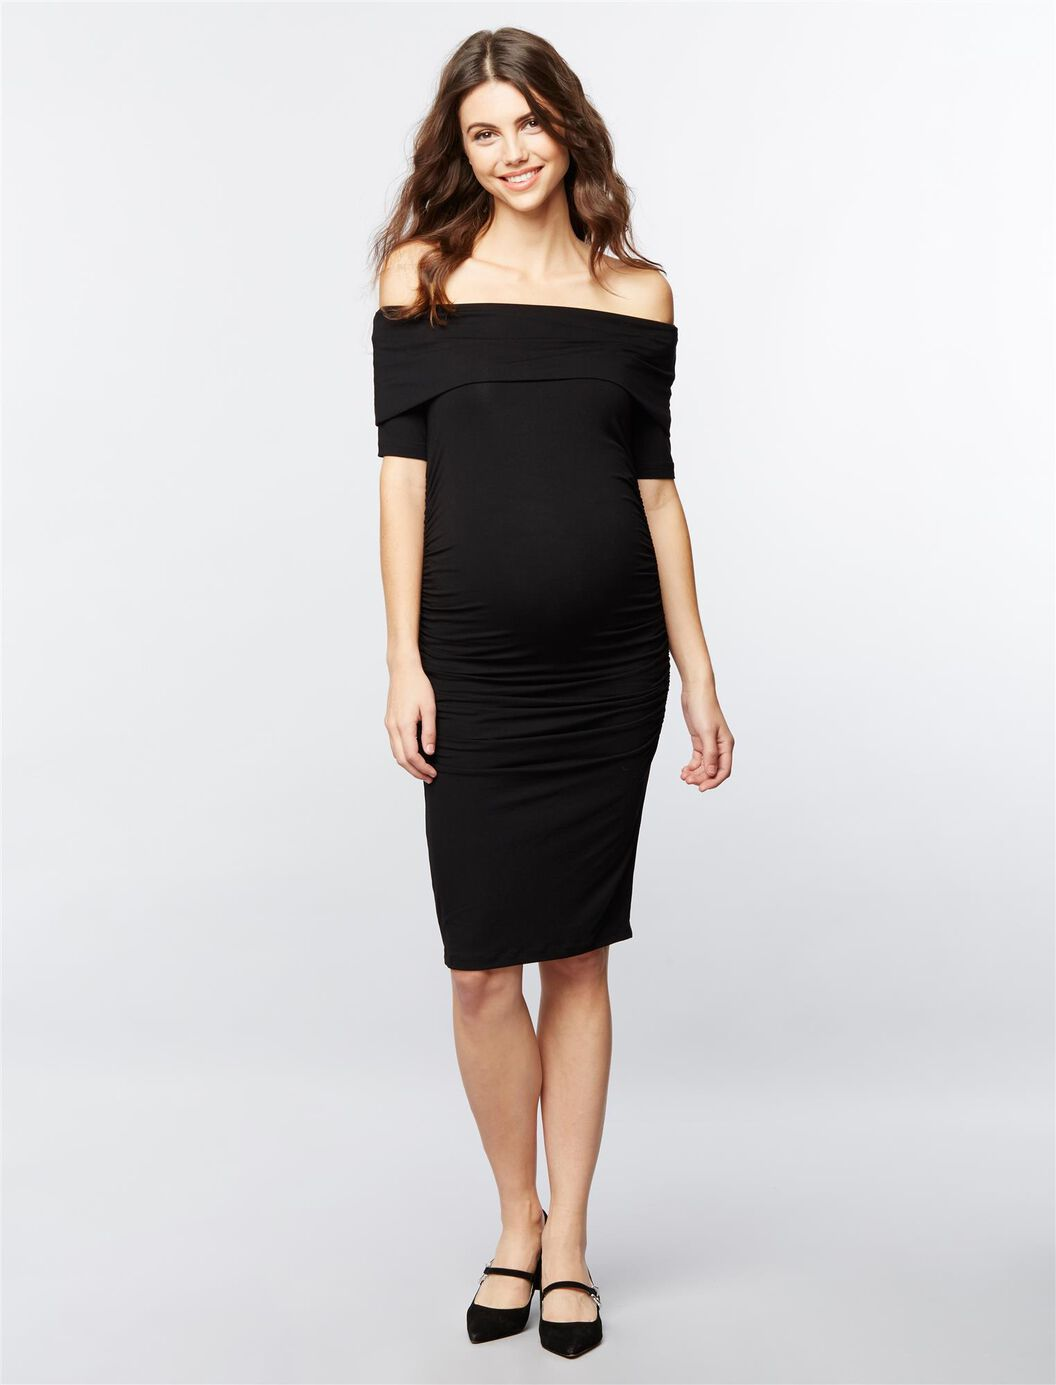 Isabella oliver ruched maternity dress a pea in the pod maternity isabella oliver ruched maternity dress black ombrellifo Gallery